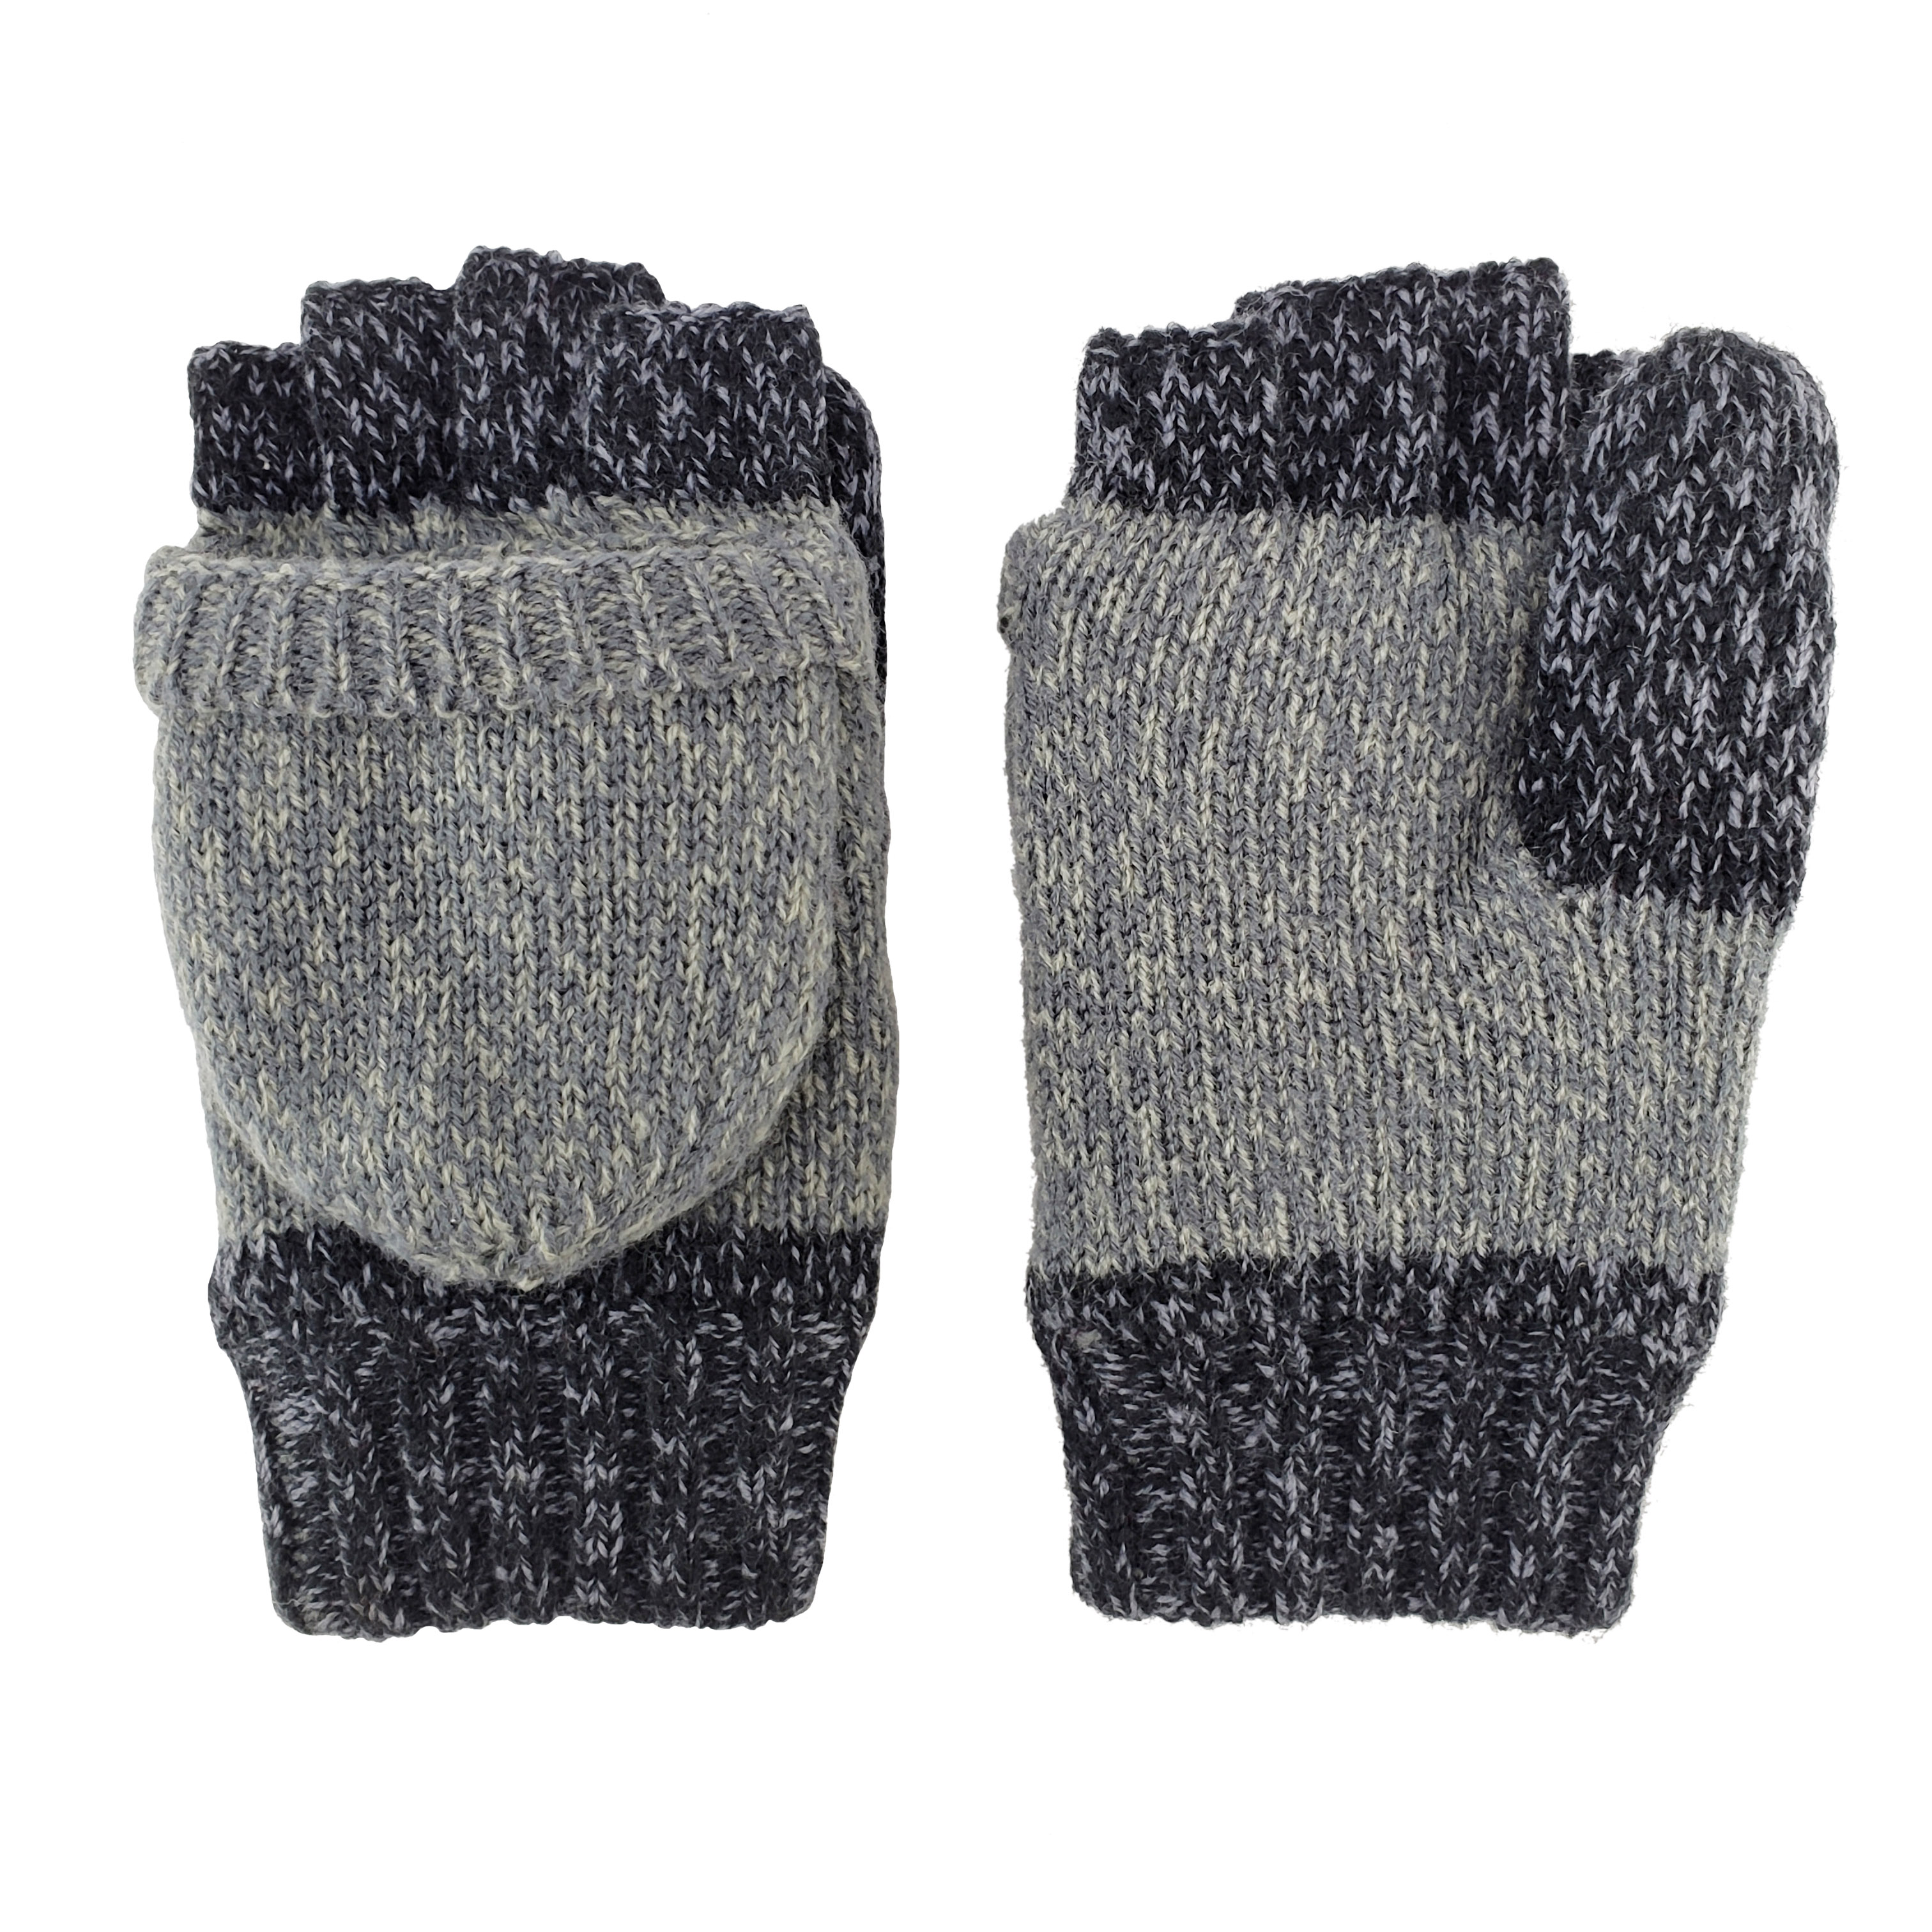 Bruceriver Ladies' Knit Convertible Fingerless Driving Gloves With Mitten Cover